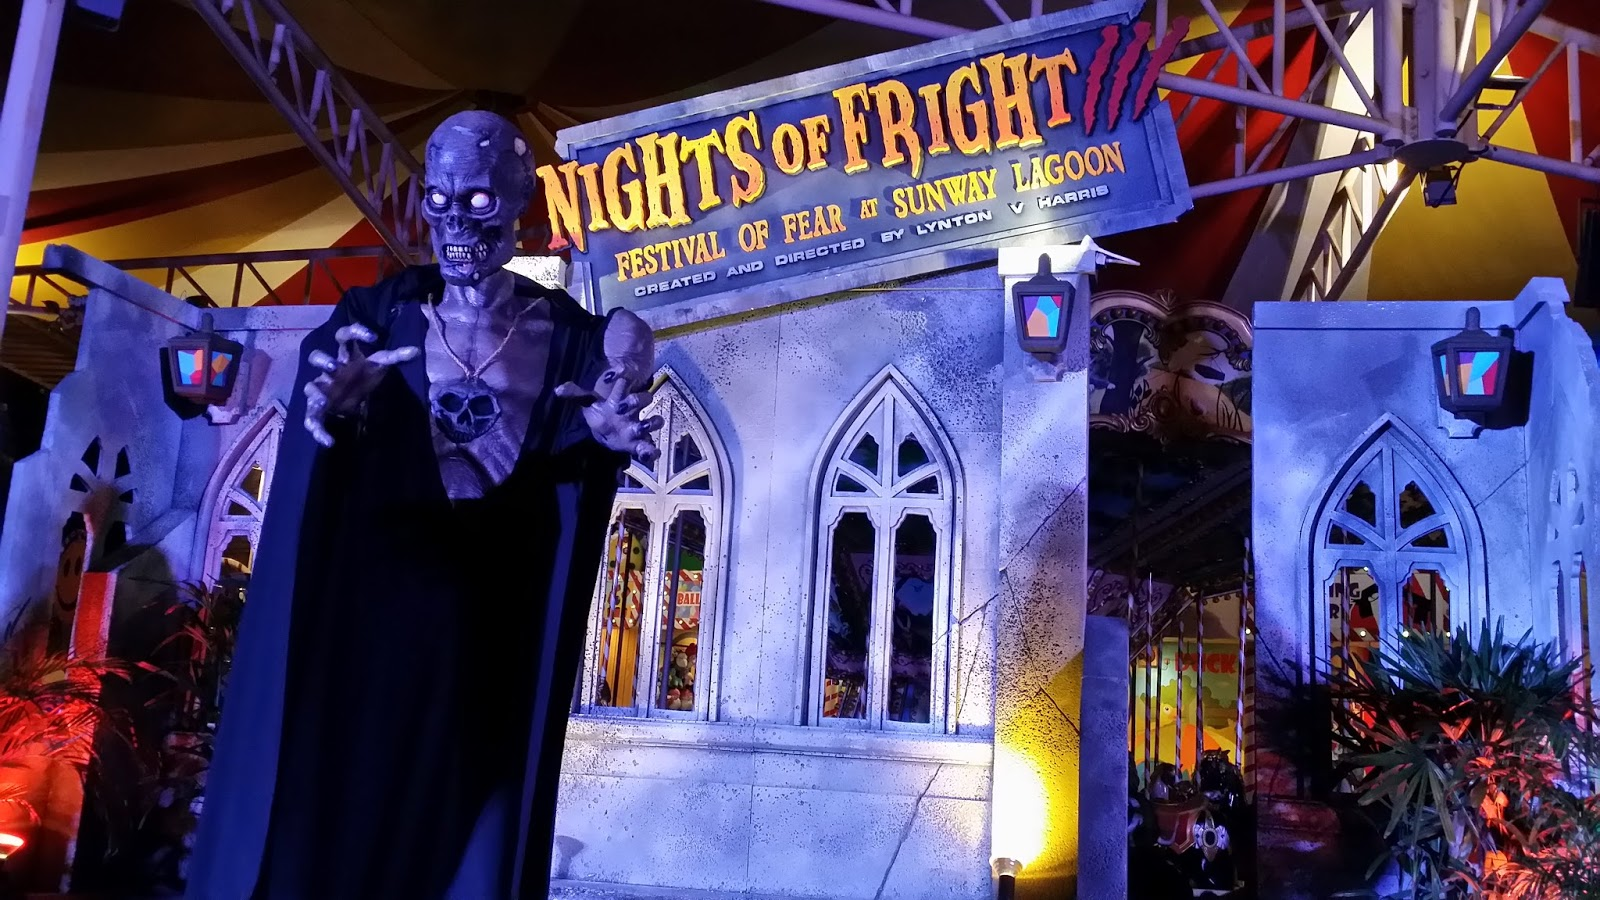 Sunway Lagoon, Night of Fright 3: Festival of Fear - Malaysian